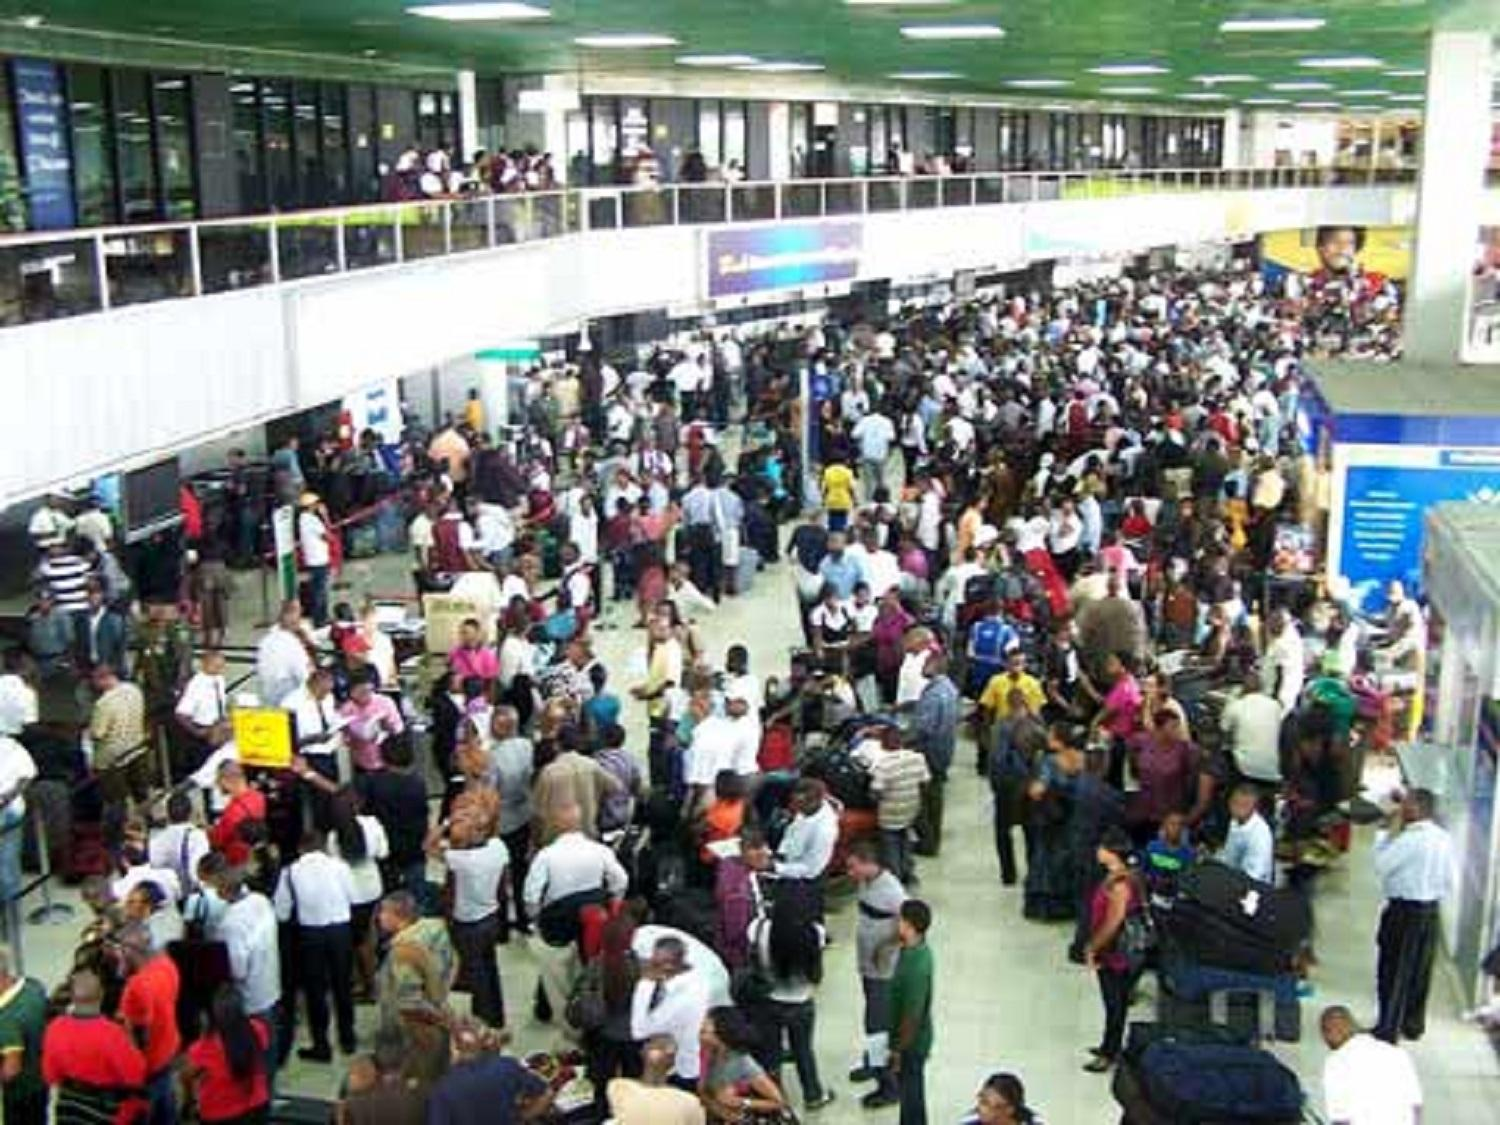 FG reduces passengers arrival time to airport to 1hr 30mins